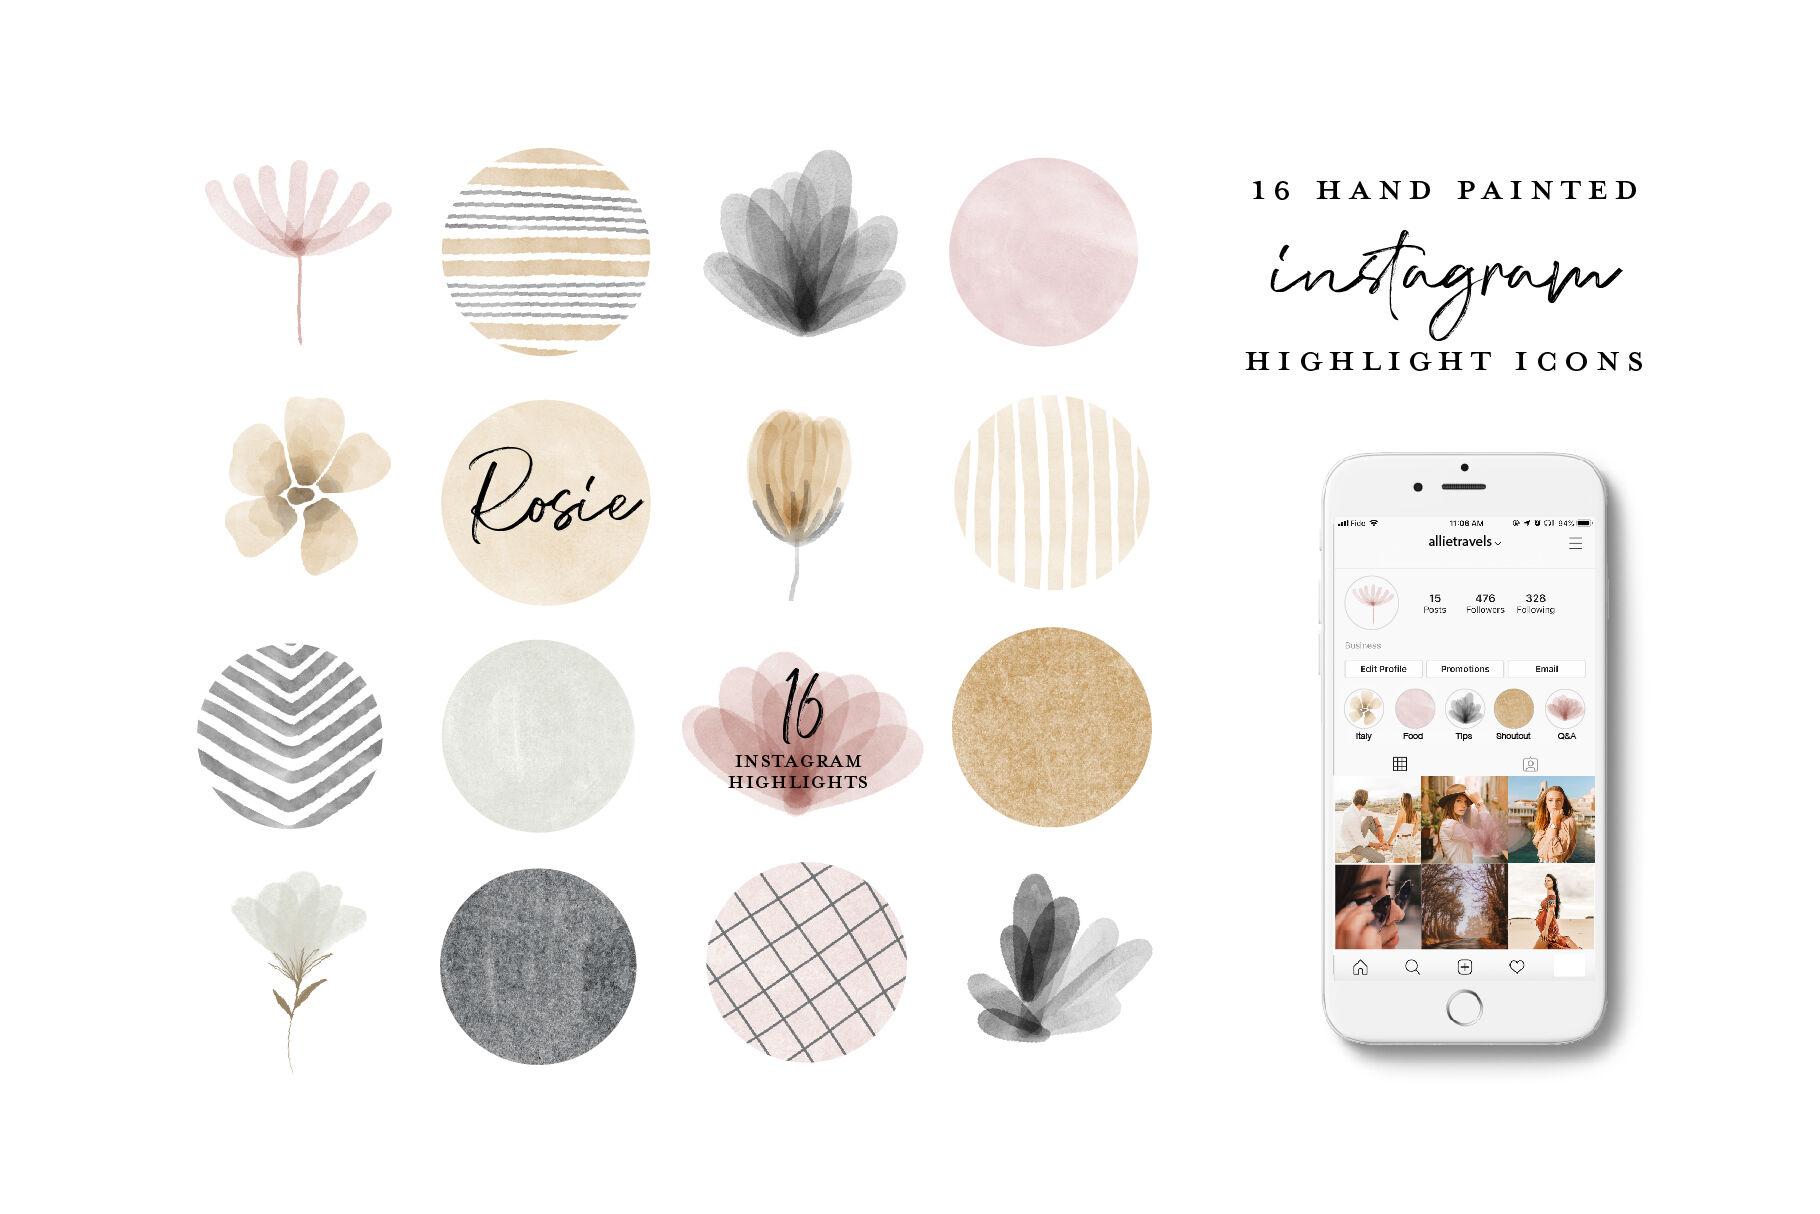 Watercolor Instagram Highlight Icons By Beatrice Avenue